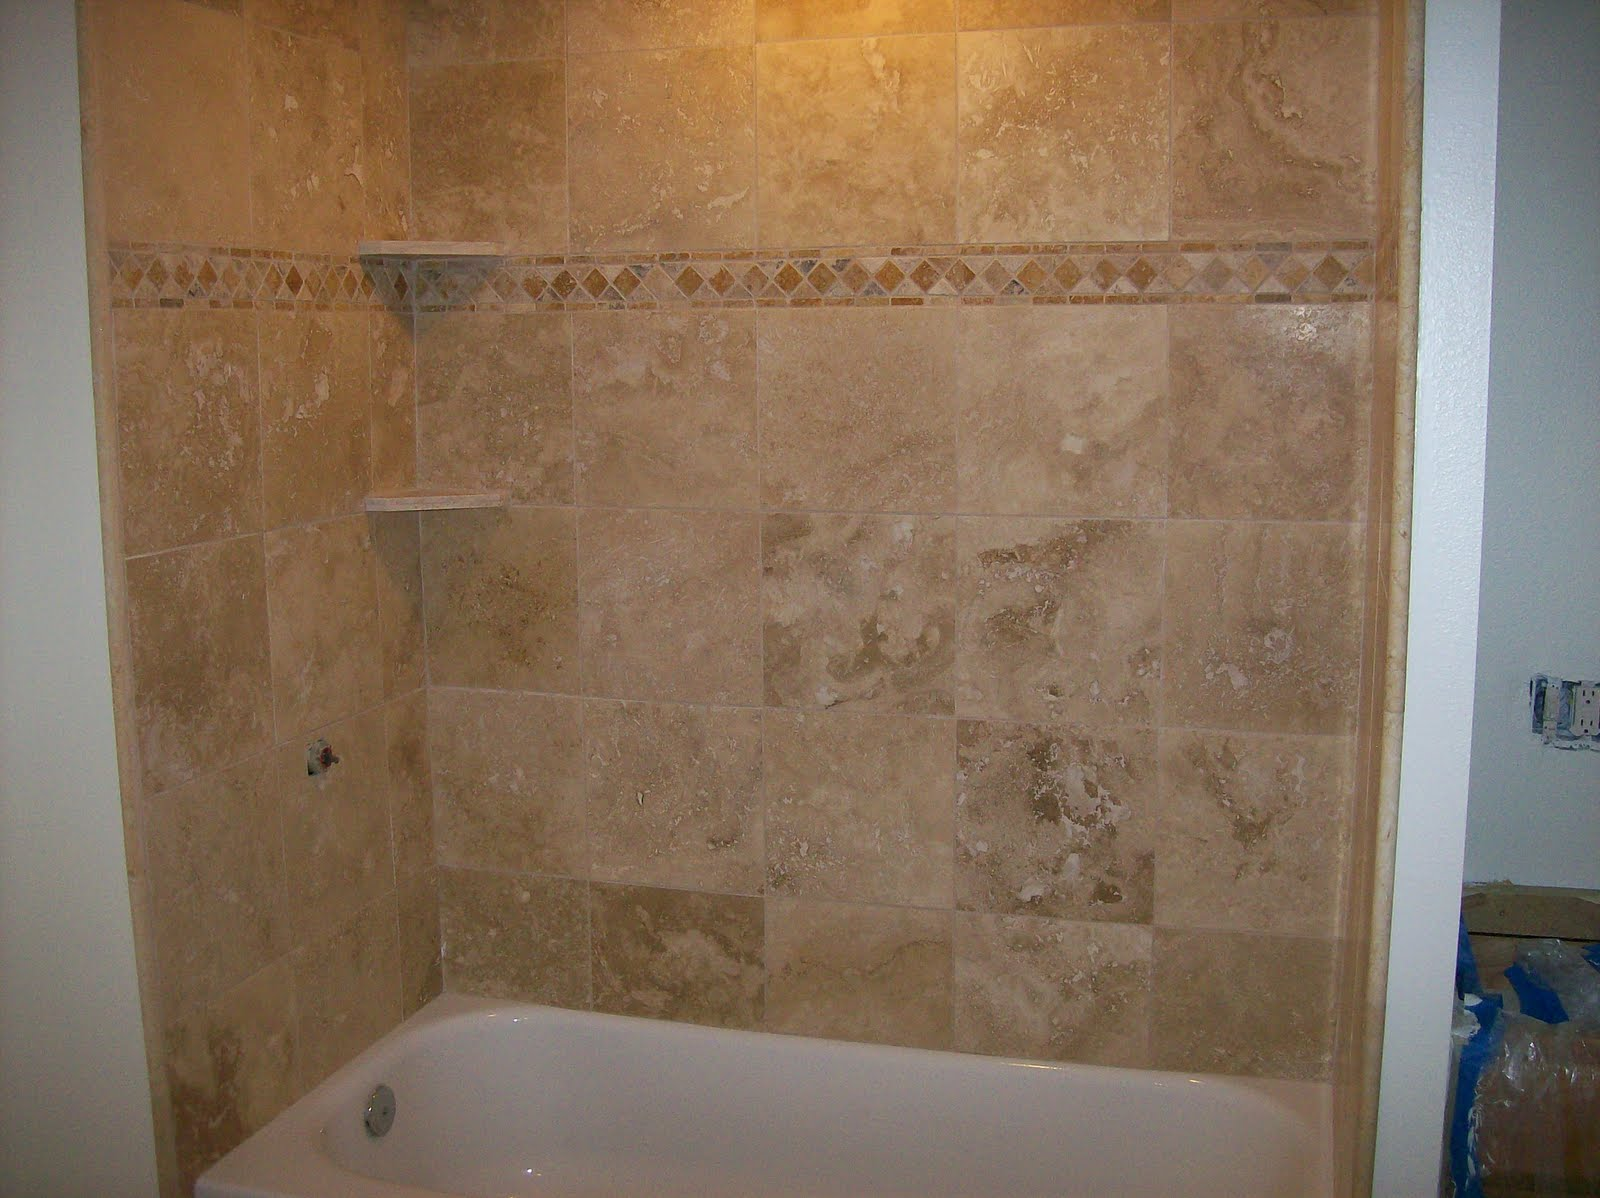 20 pictures about is travertine tile good for bathroom floors with ideas - Tile shower surround ideas ...